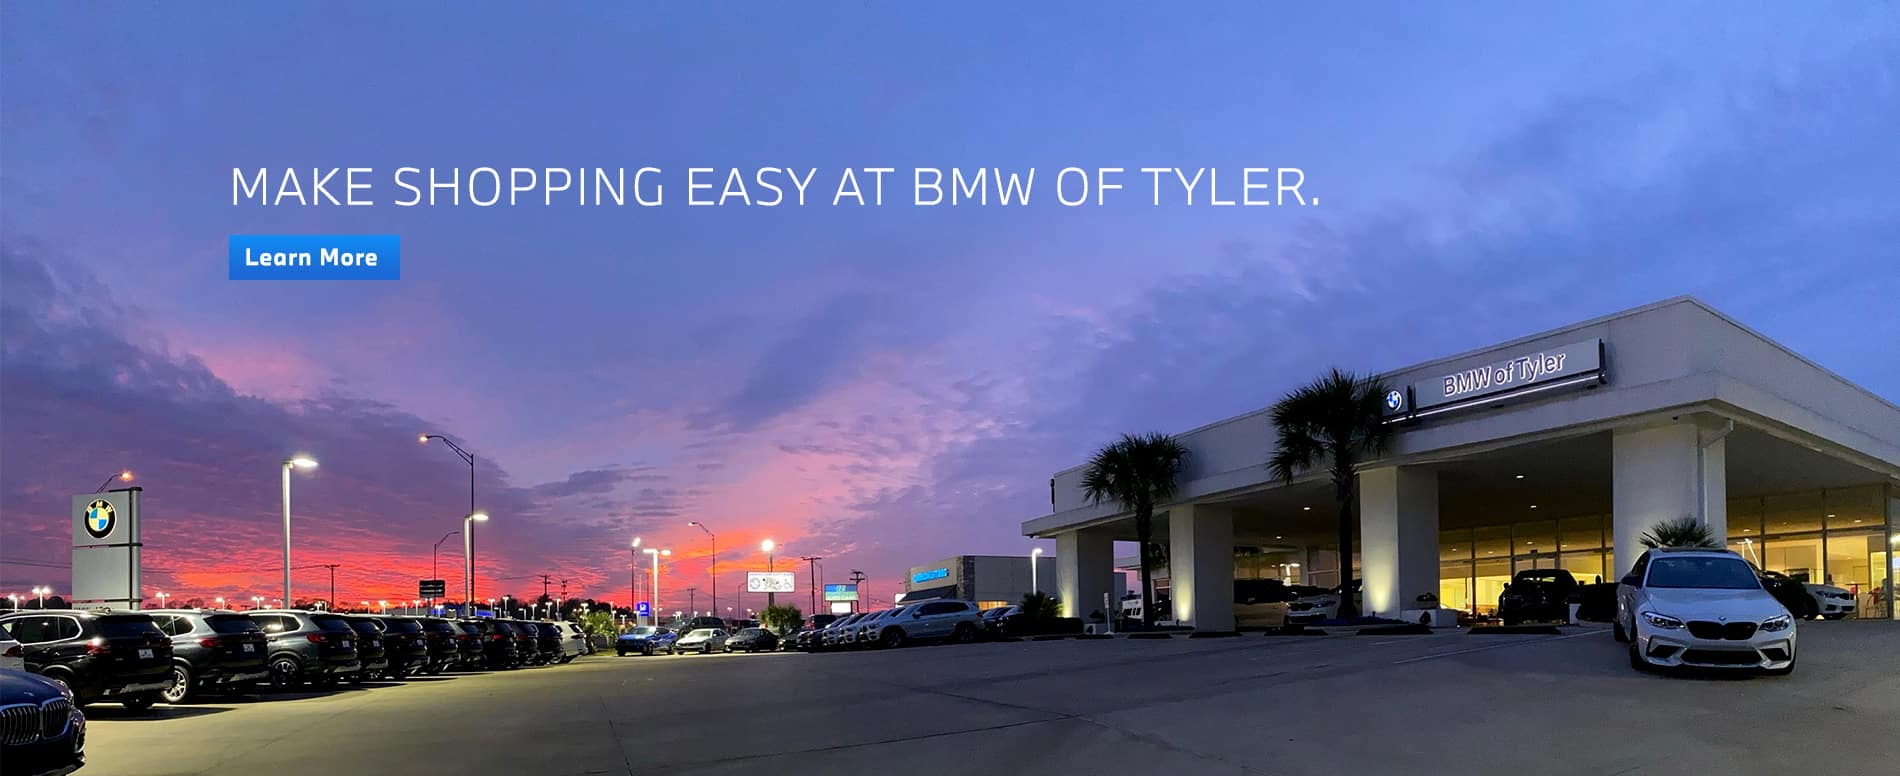 MAKE-SHOPPING-EASY_BMW-OF-TYLER